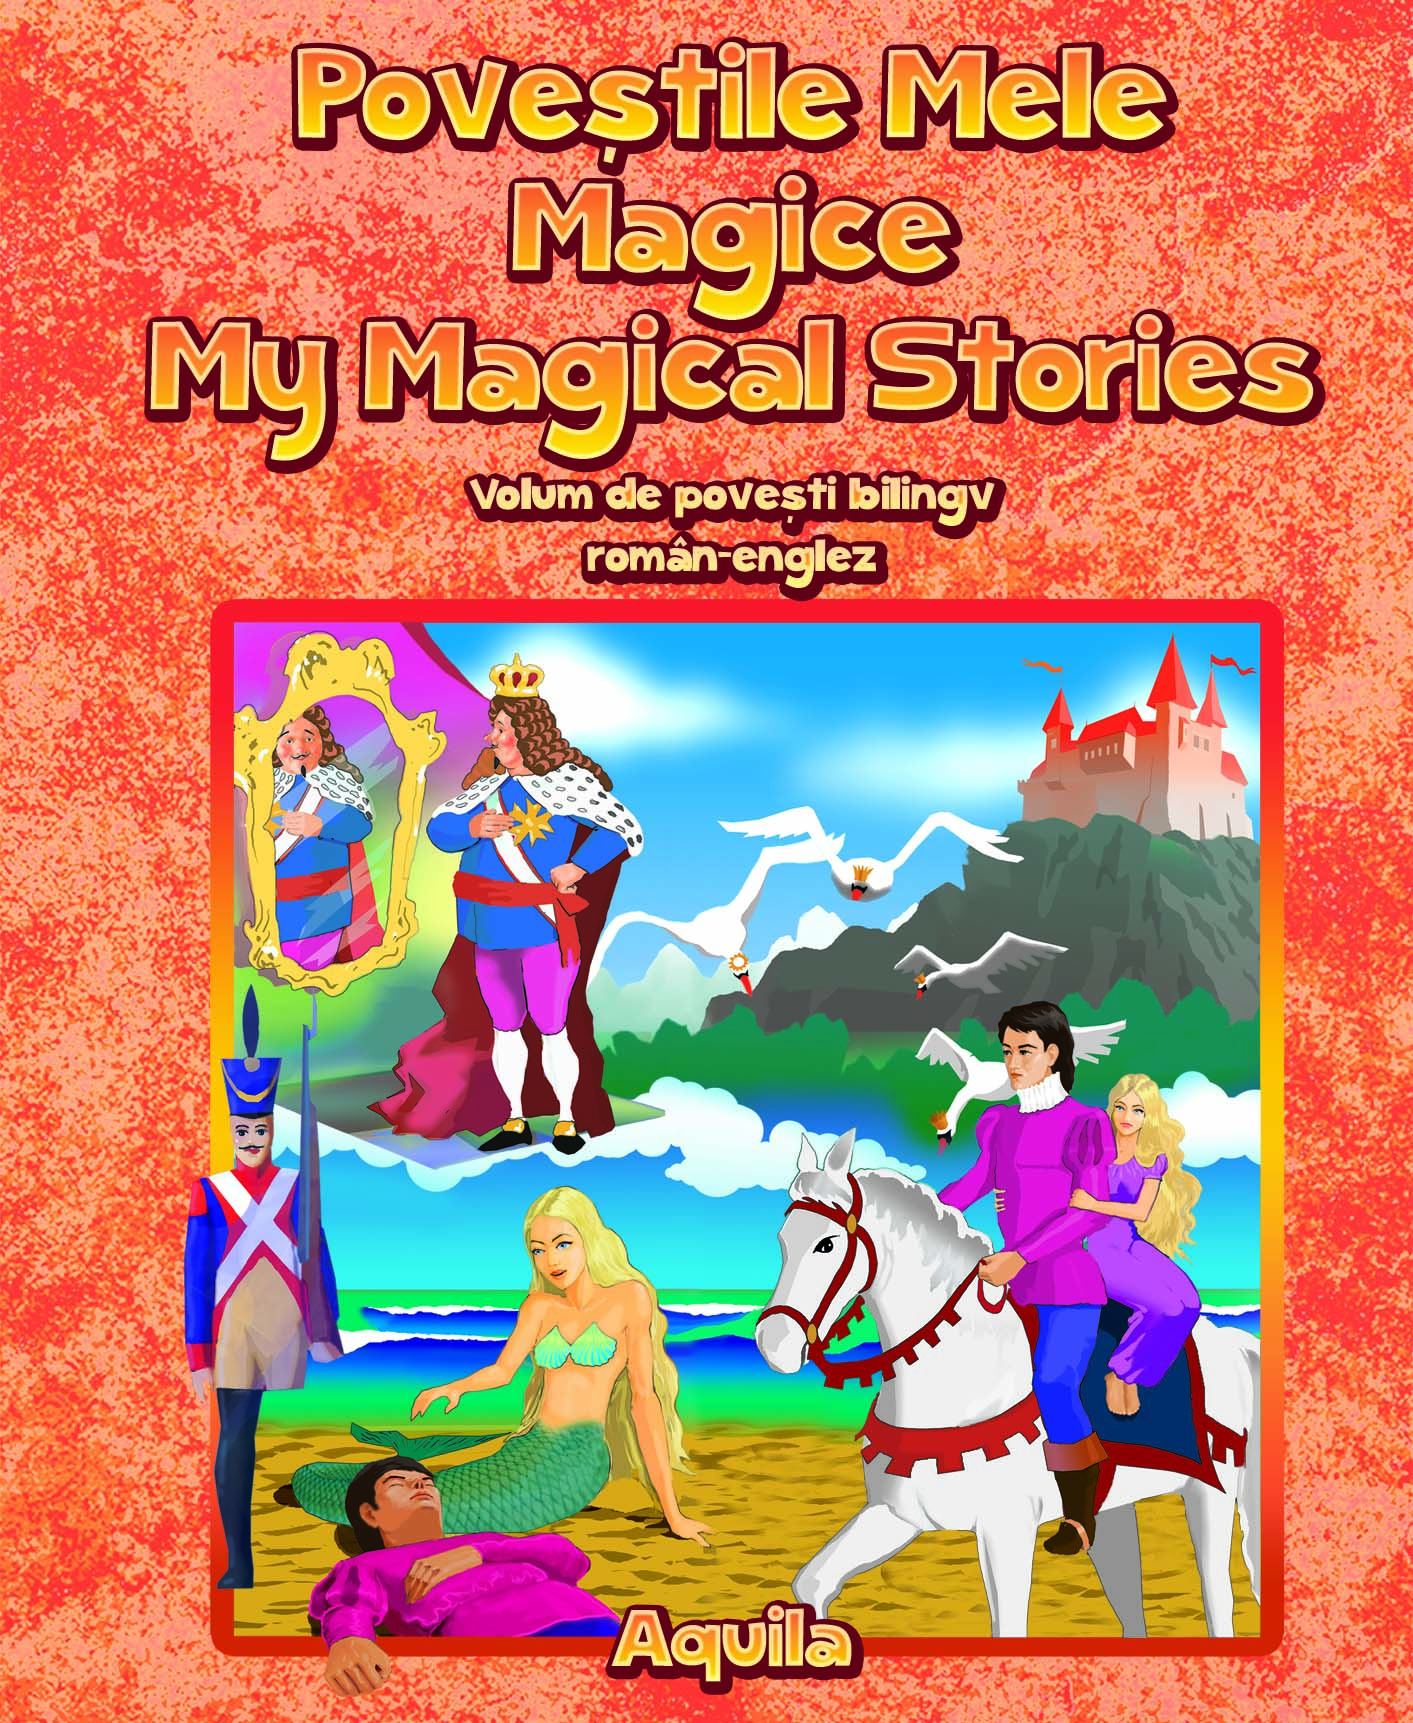 Povestile mele magice/My Magical Stories